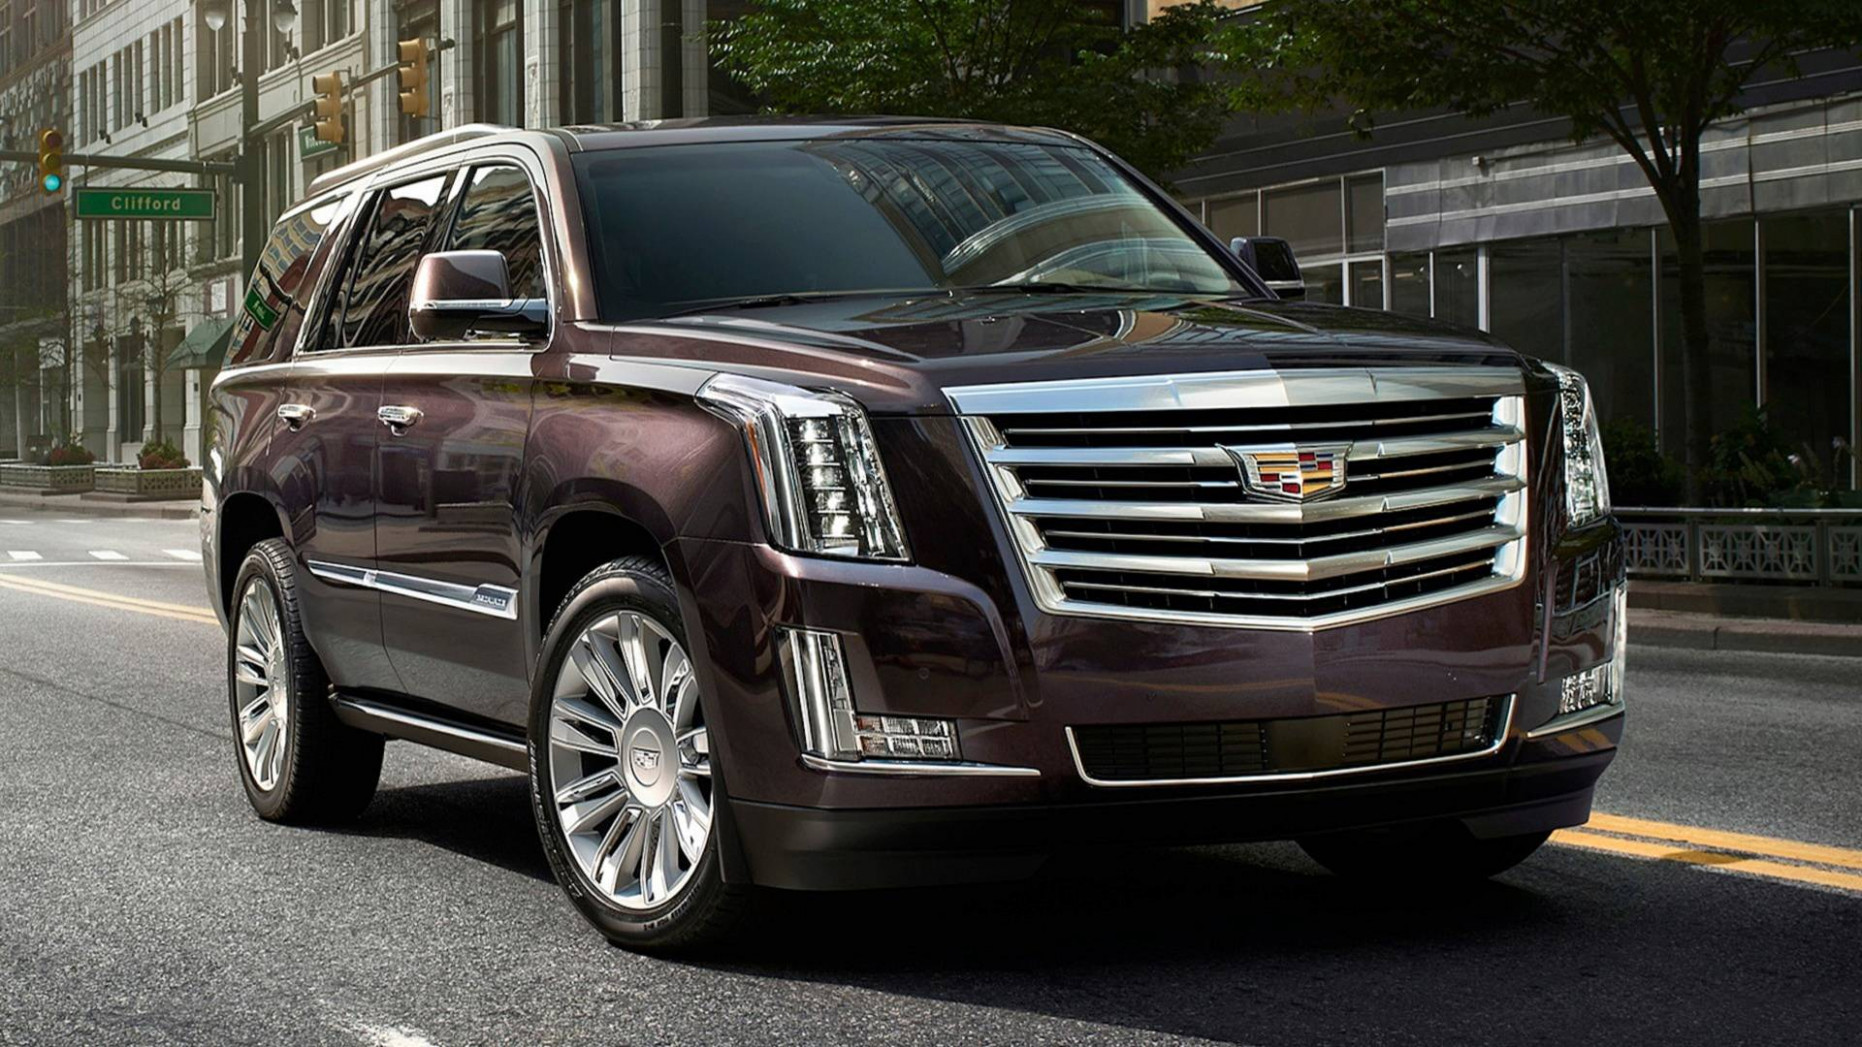 8 Cadillac Escalade Could Have Three Engines, Including Plug-In